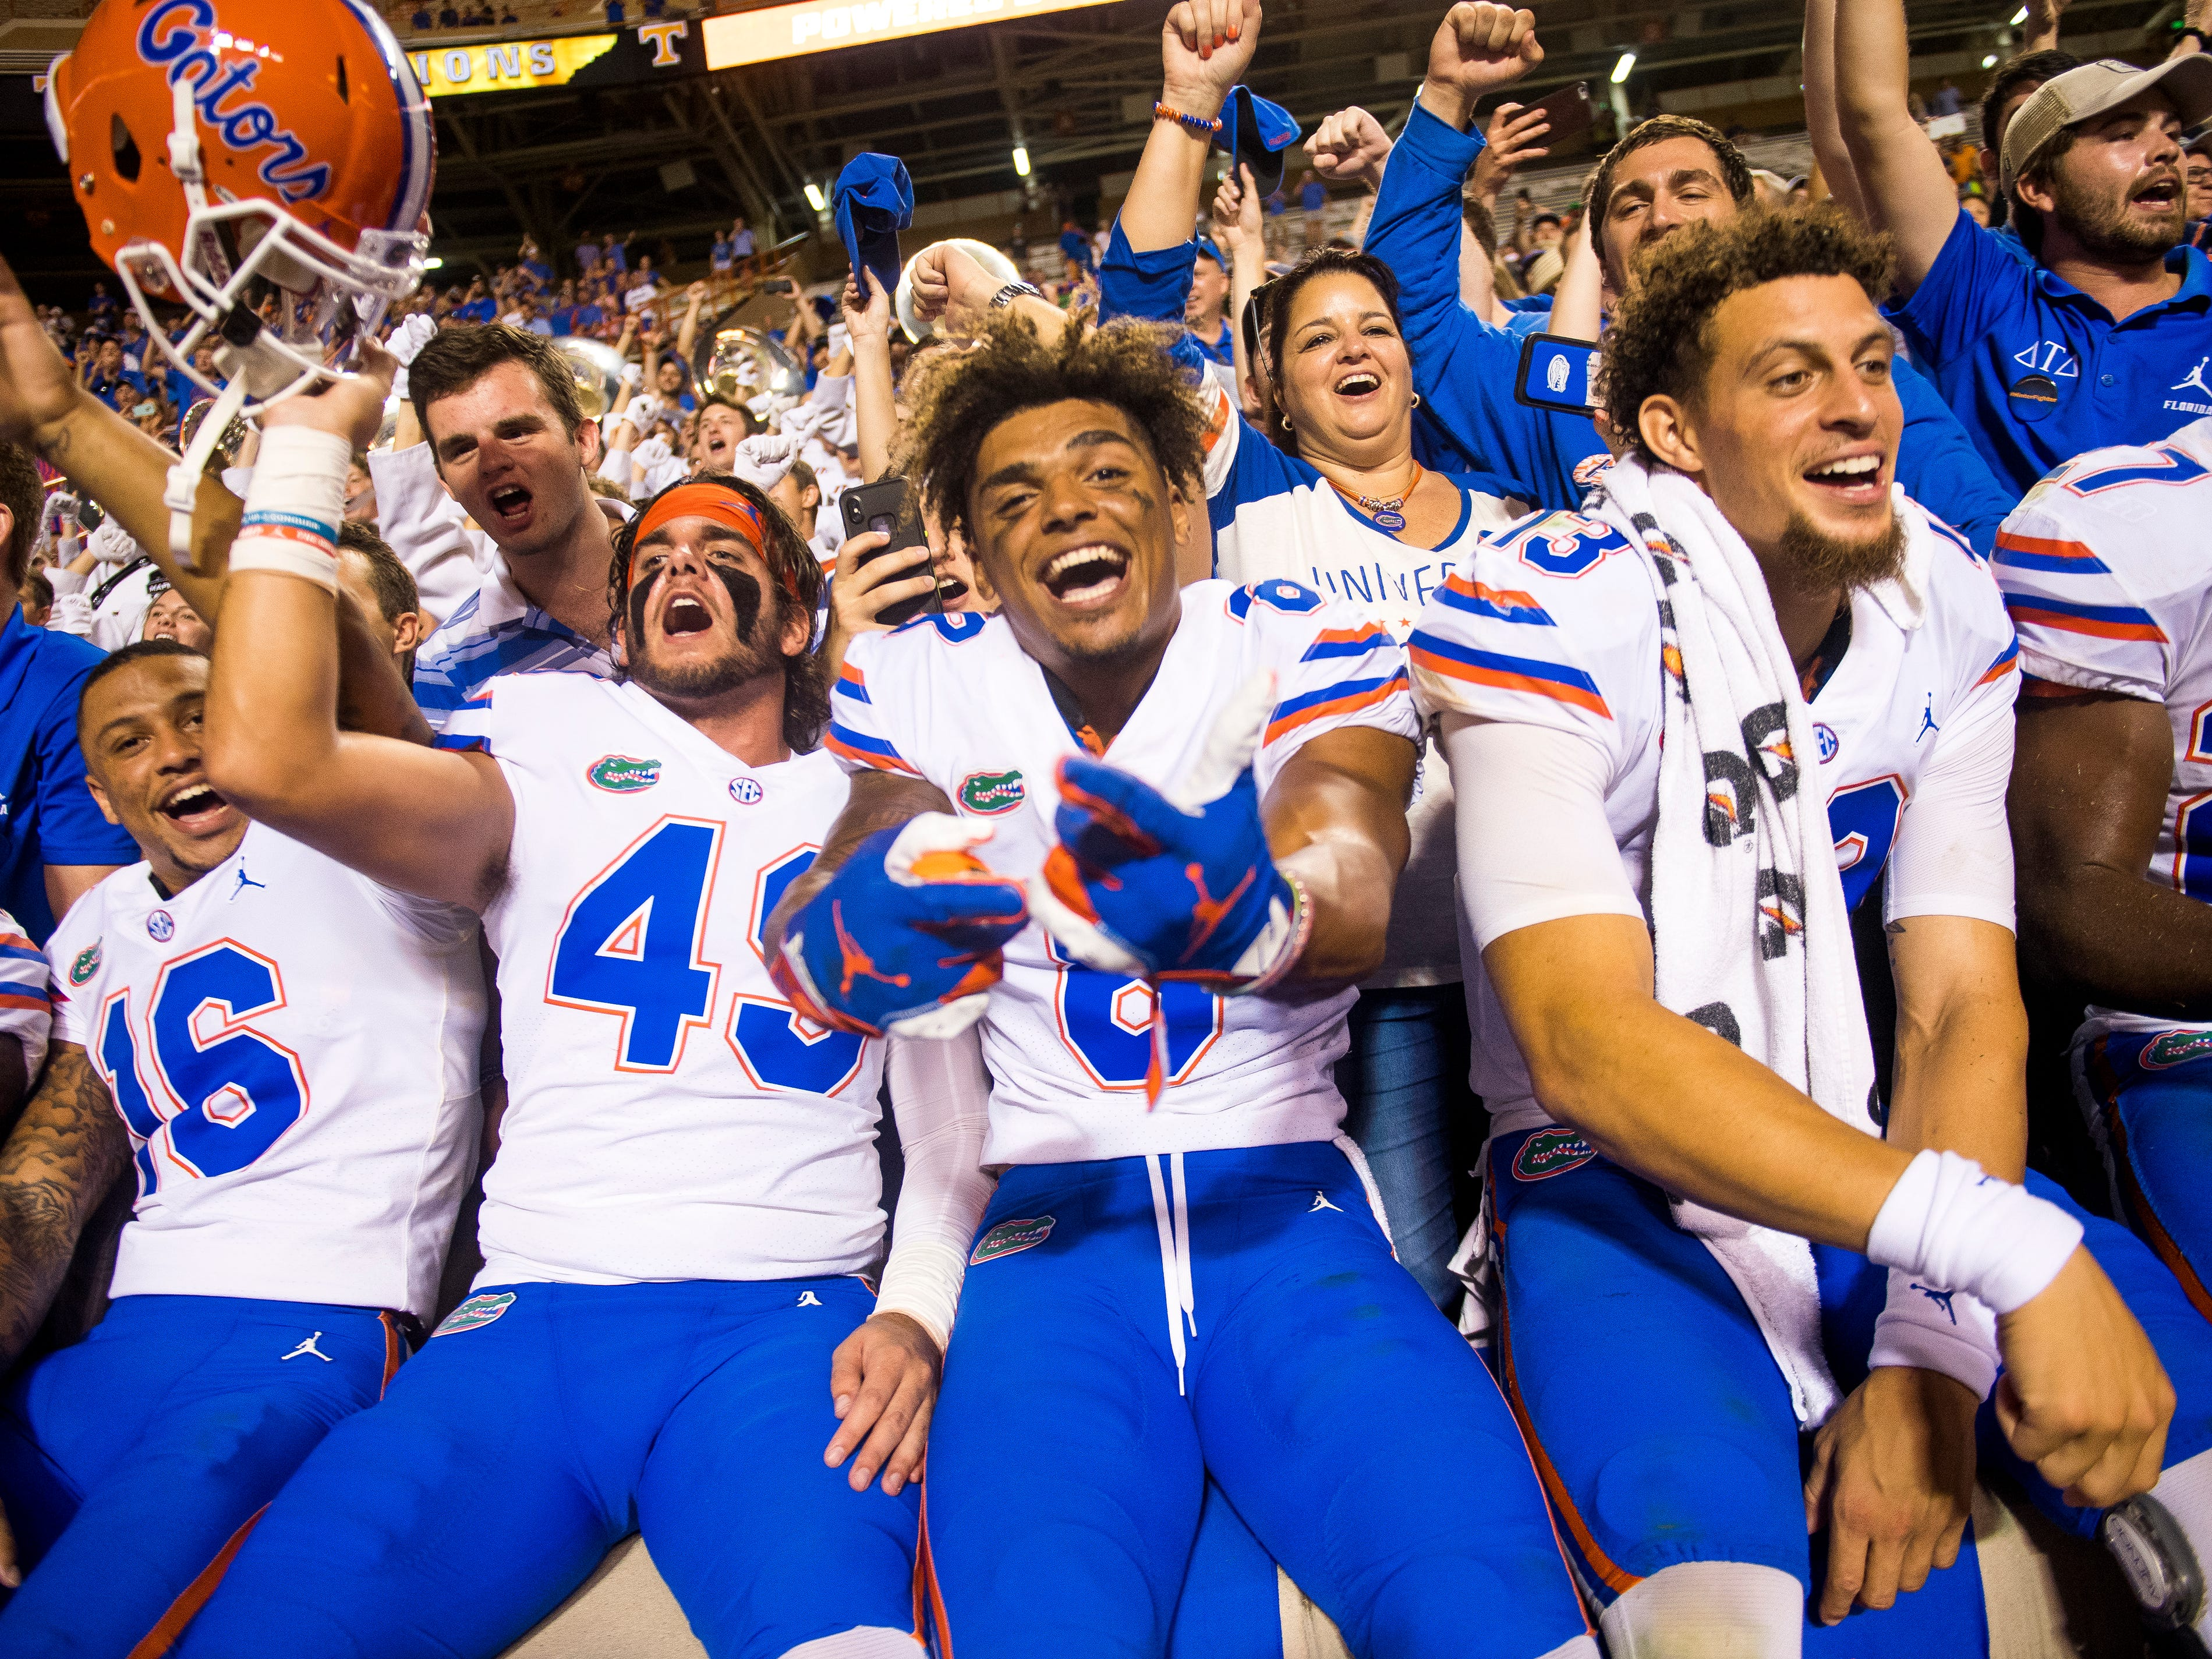 Florida long snapper Jacob Tilghman (49), Florida wide receiver Trevon Grimes (8) and Florida quarterback Feleipe Franks (13) celebrate after their 47-21 victory against Tennessee in Neyland Stadium on Saturday, Sept. 22, 2018.